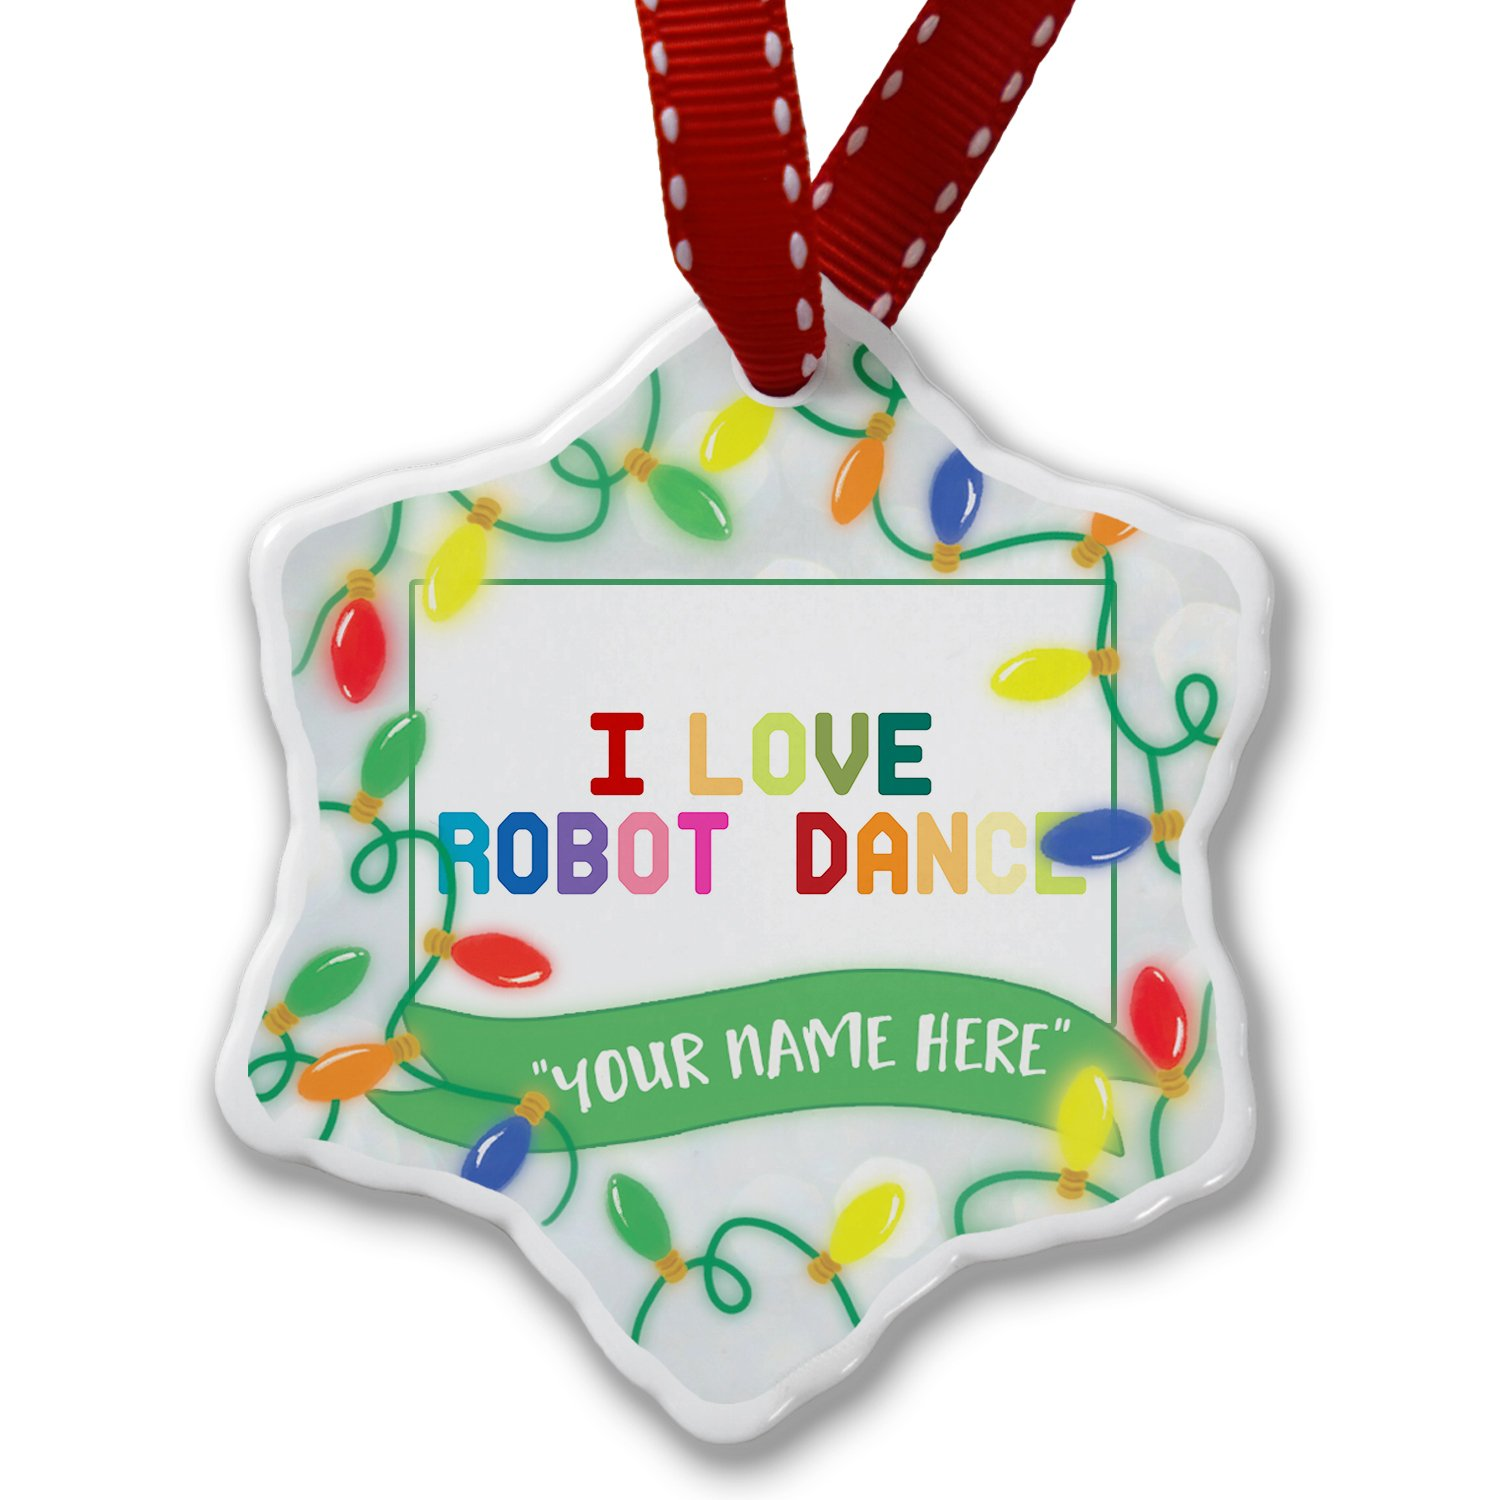 Personalized Name Christmas Ornament, I Love Robot Dance,Colorful NEONBLOND